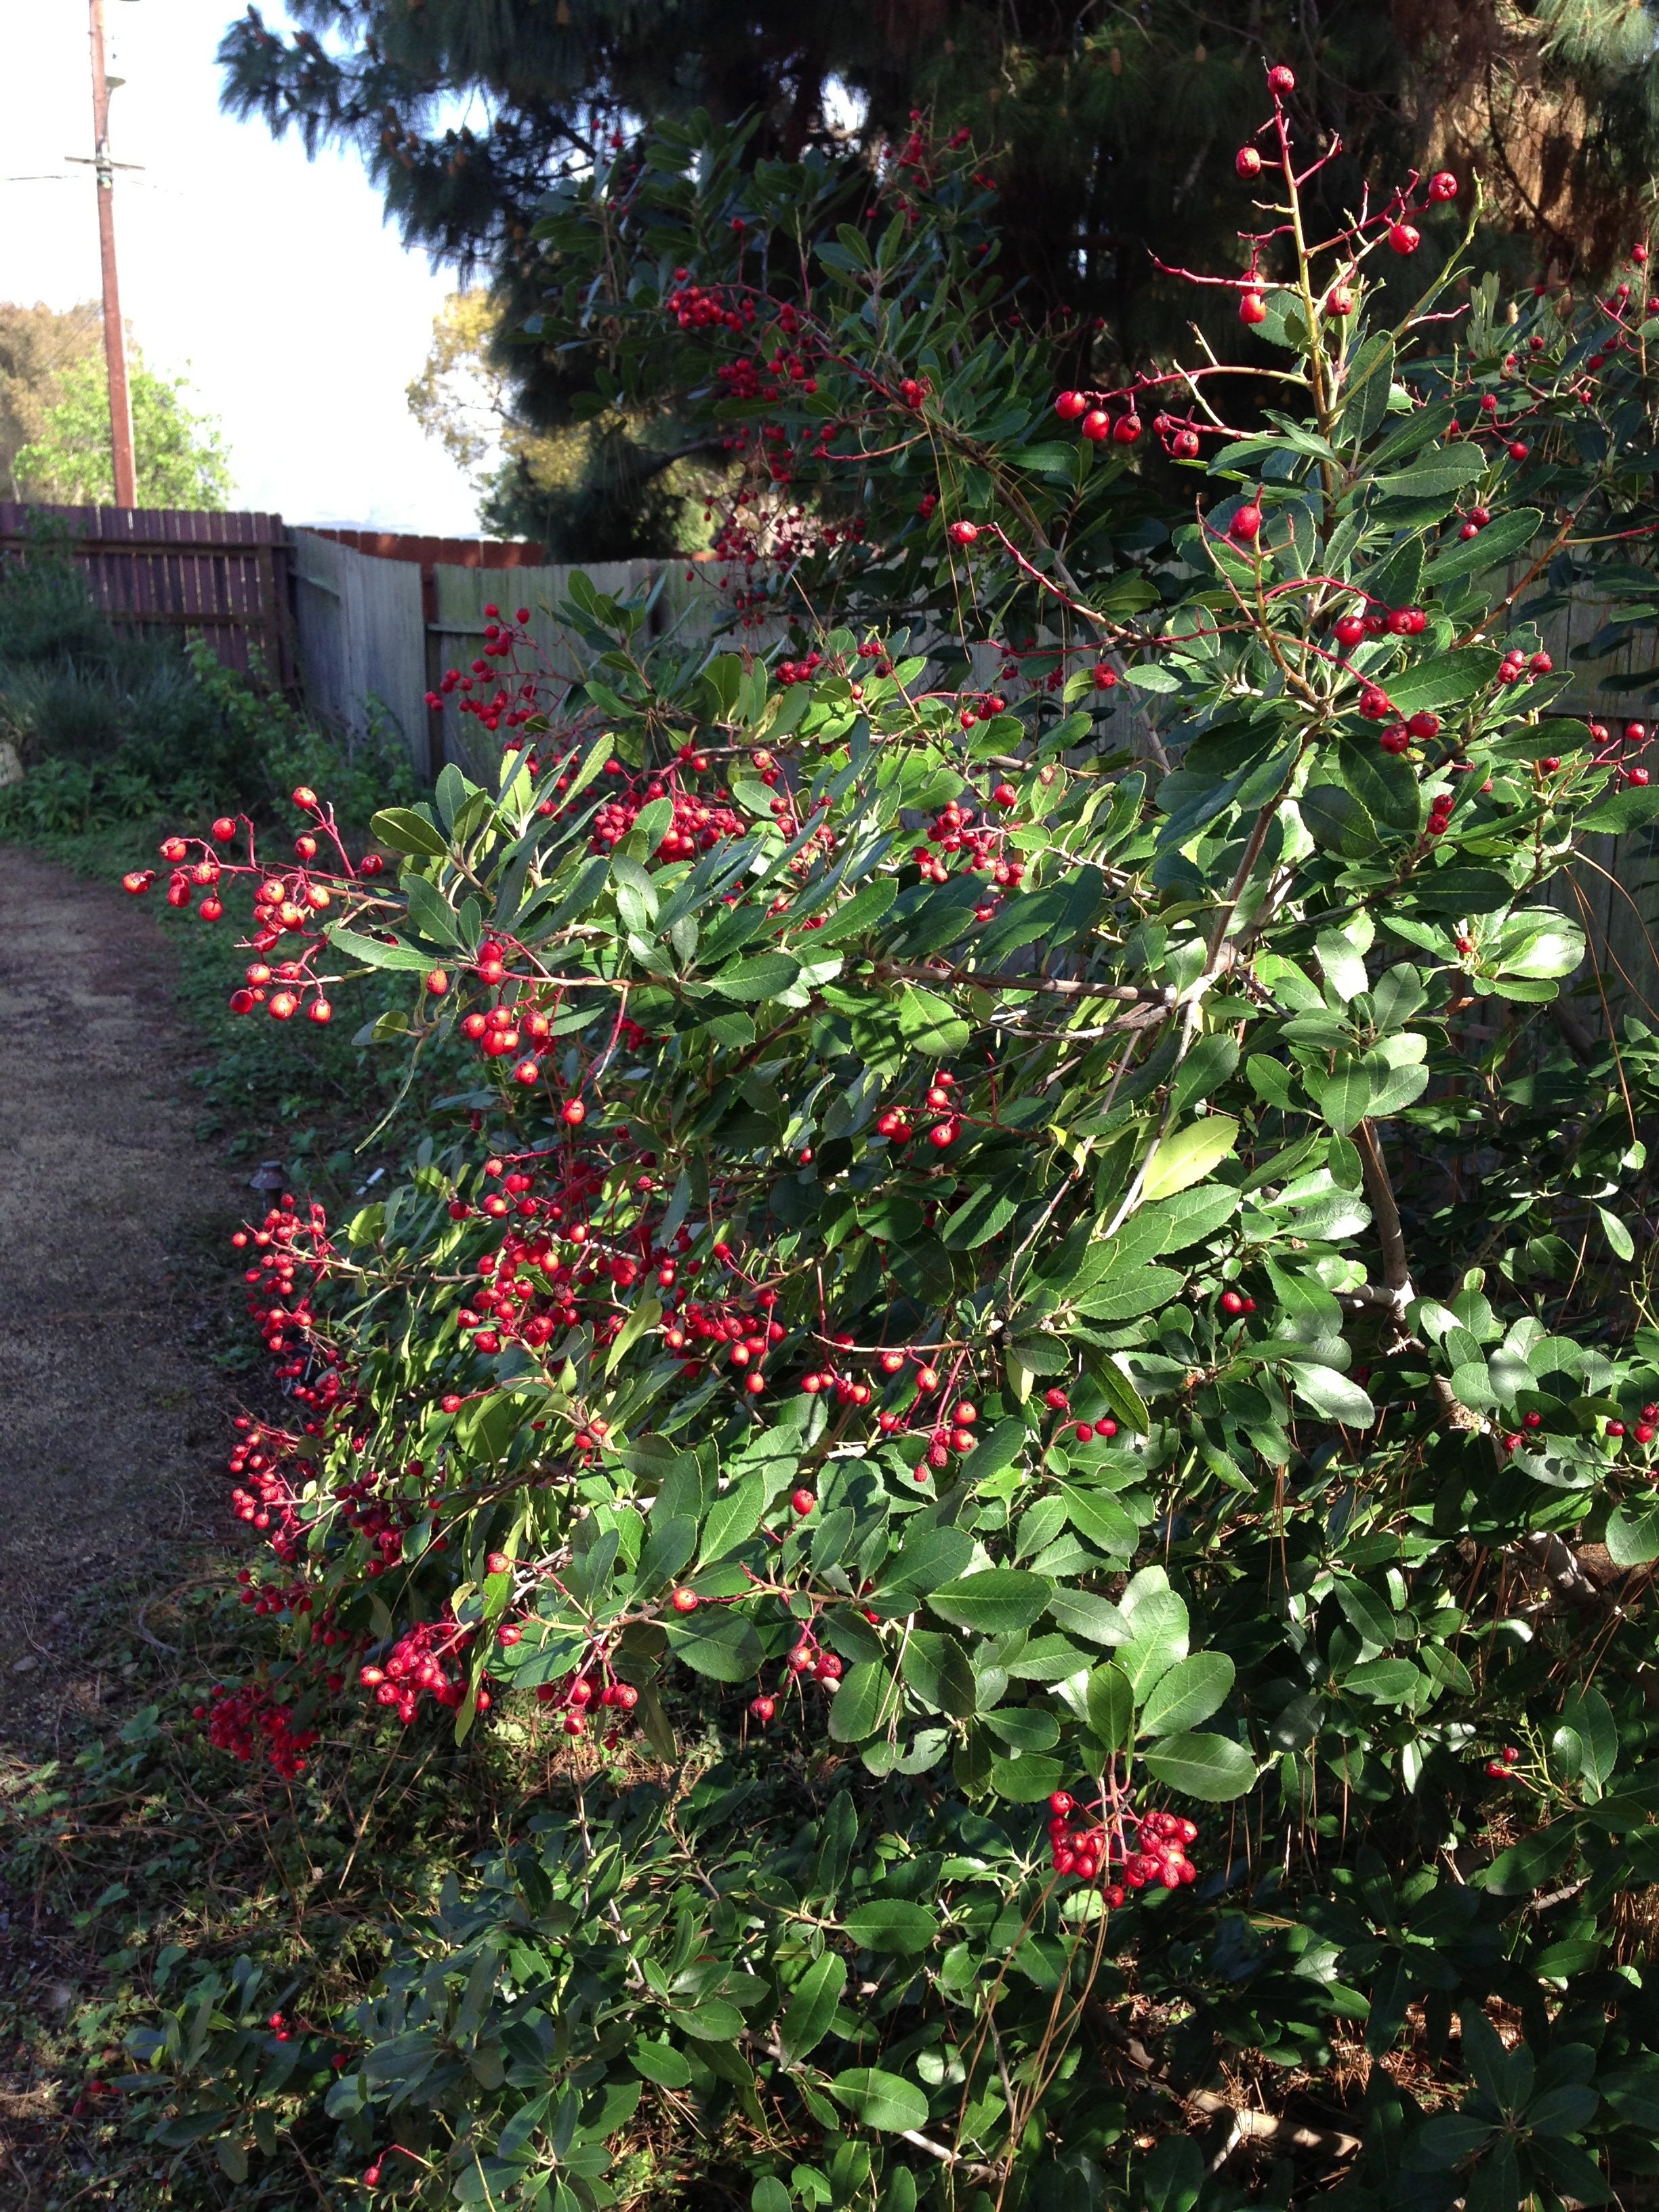 The toyon STILL has berries on it! Seems late to me, but I'm not complaining.